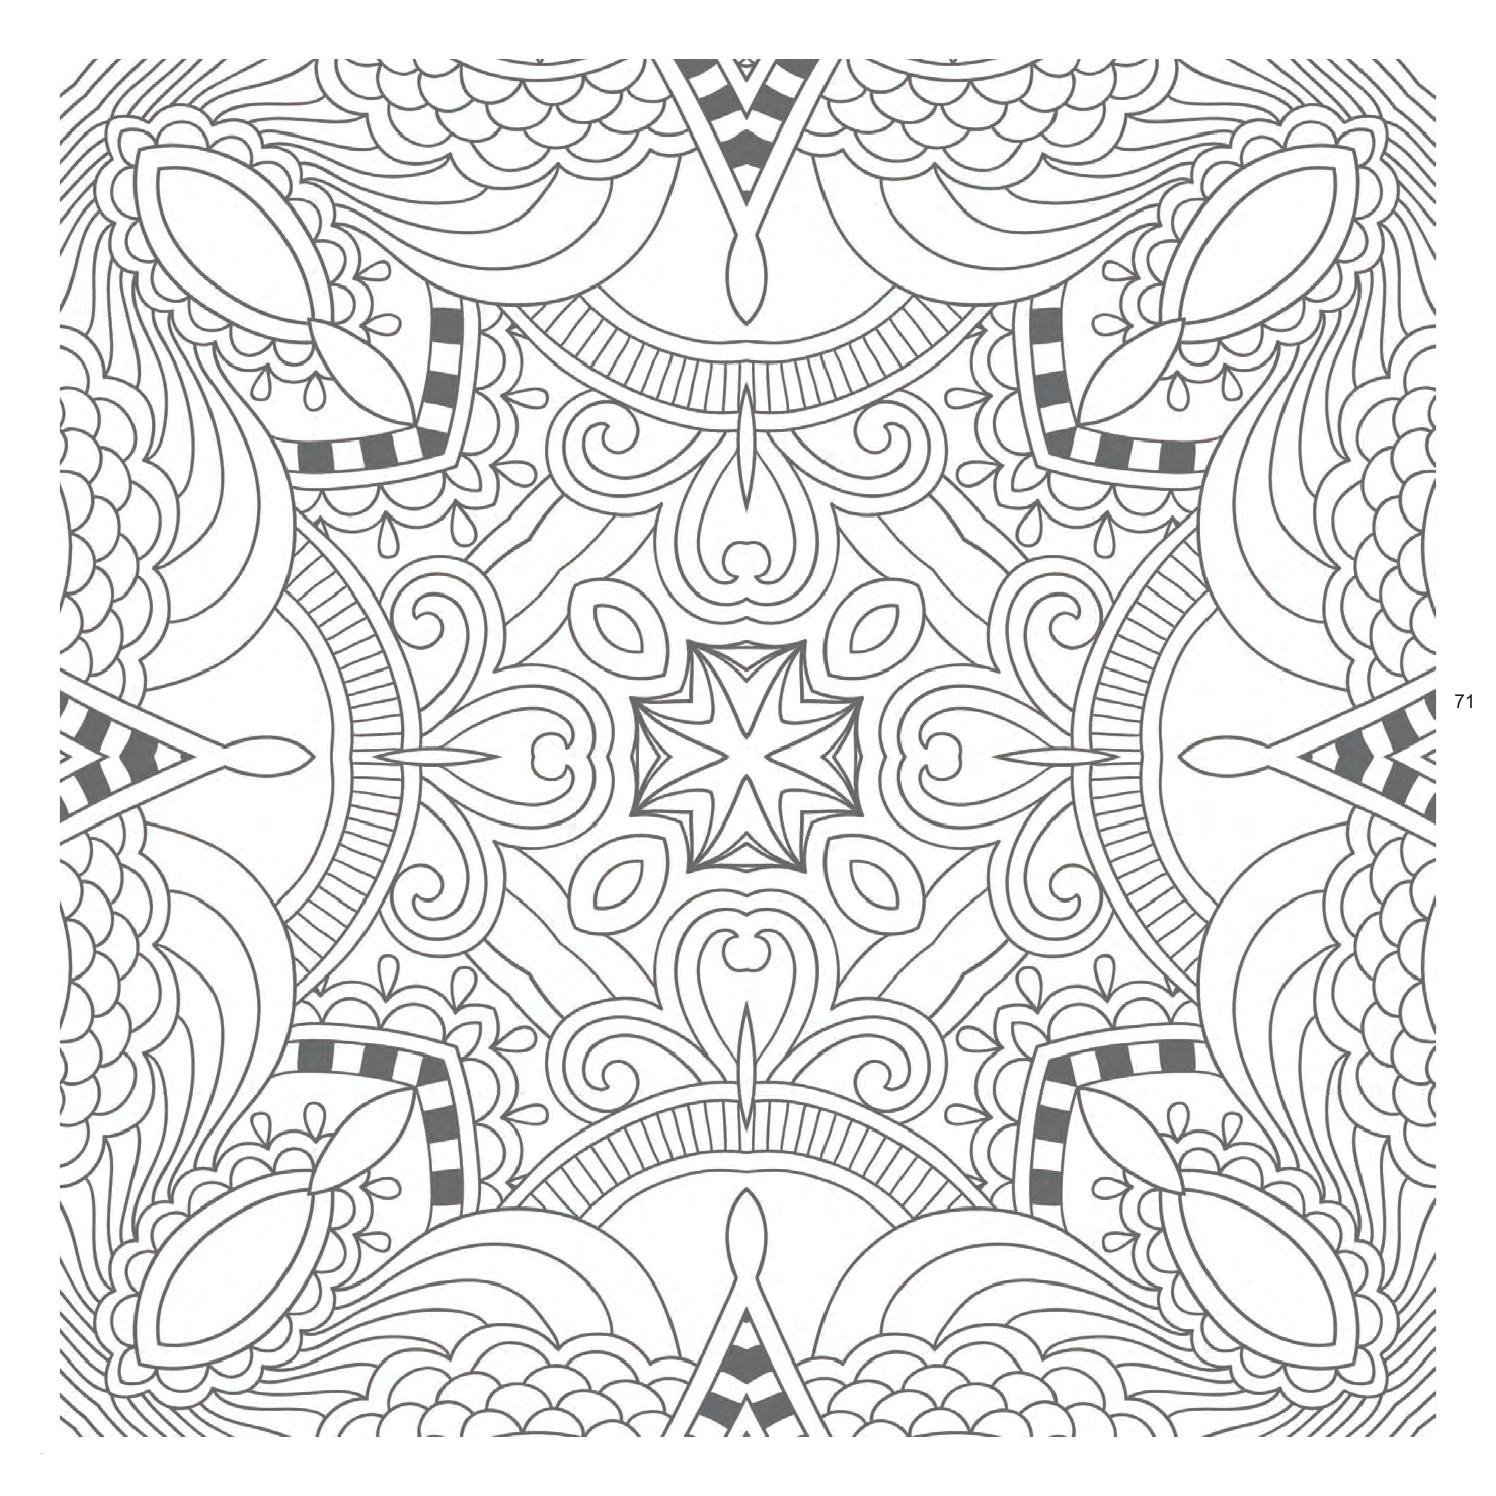 coloring pages to do on the computer Download-Print Karten Inspirierend Print Coloring Pages Luxury S S Media Cache Ak0 Pinimg originals 0d 2-c